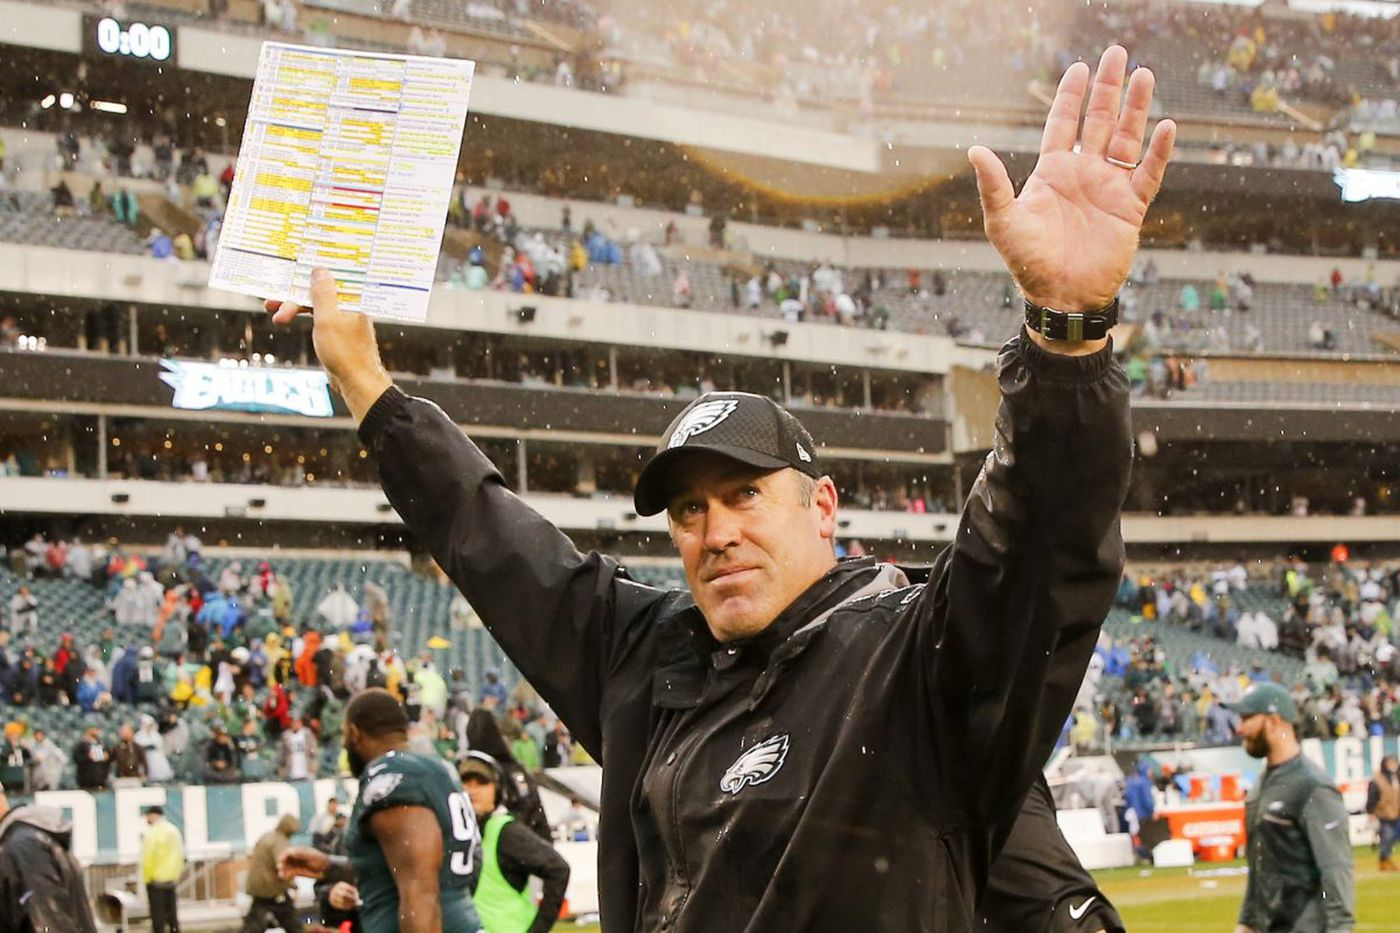 Doug Pederson, a year after the debacle in Dallas, viewed differently